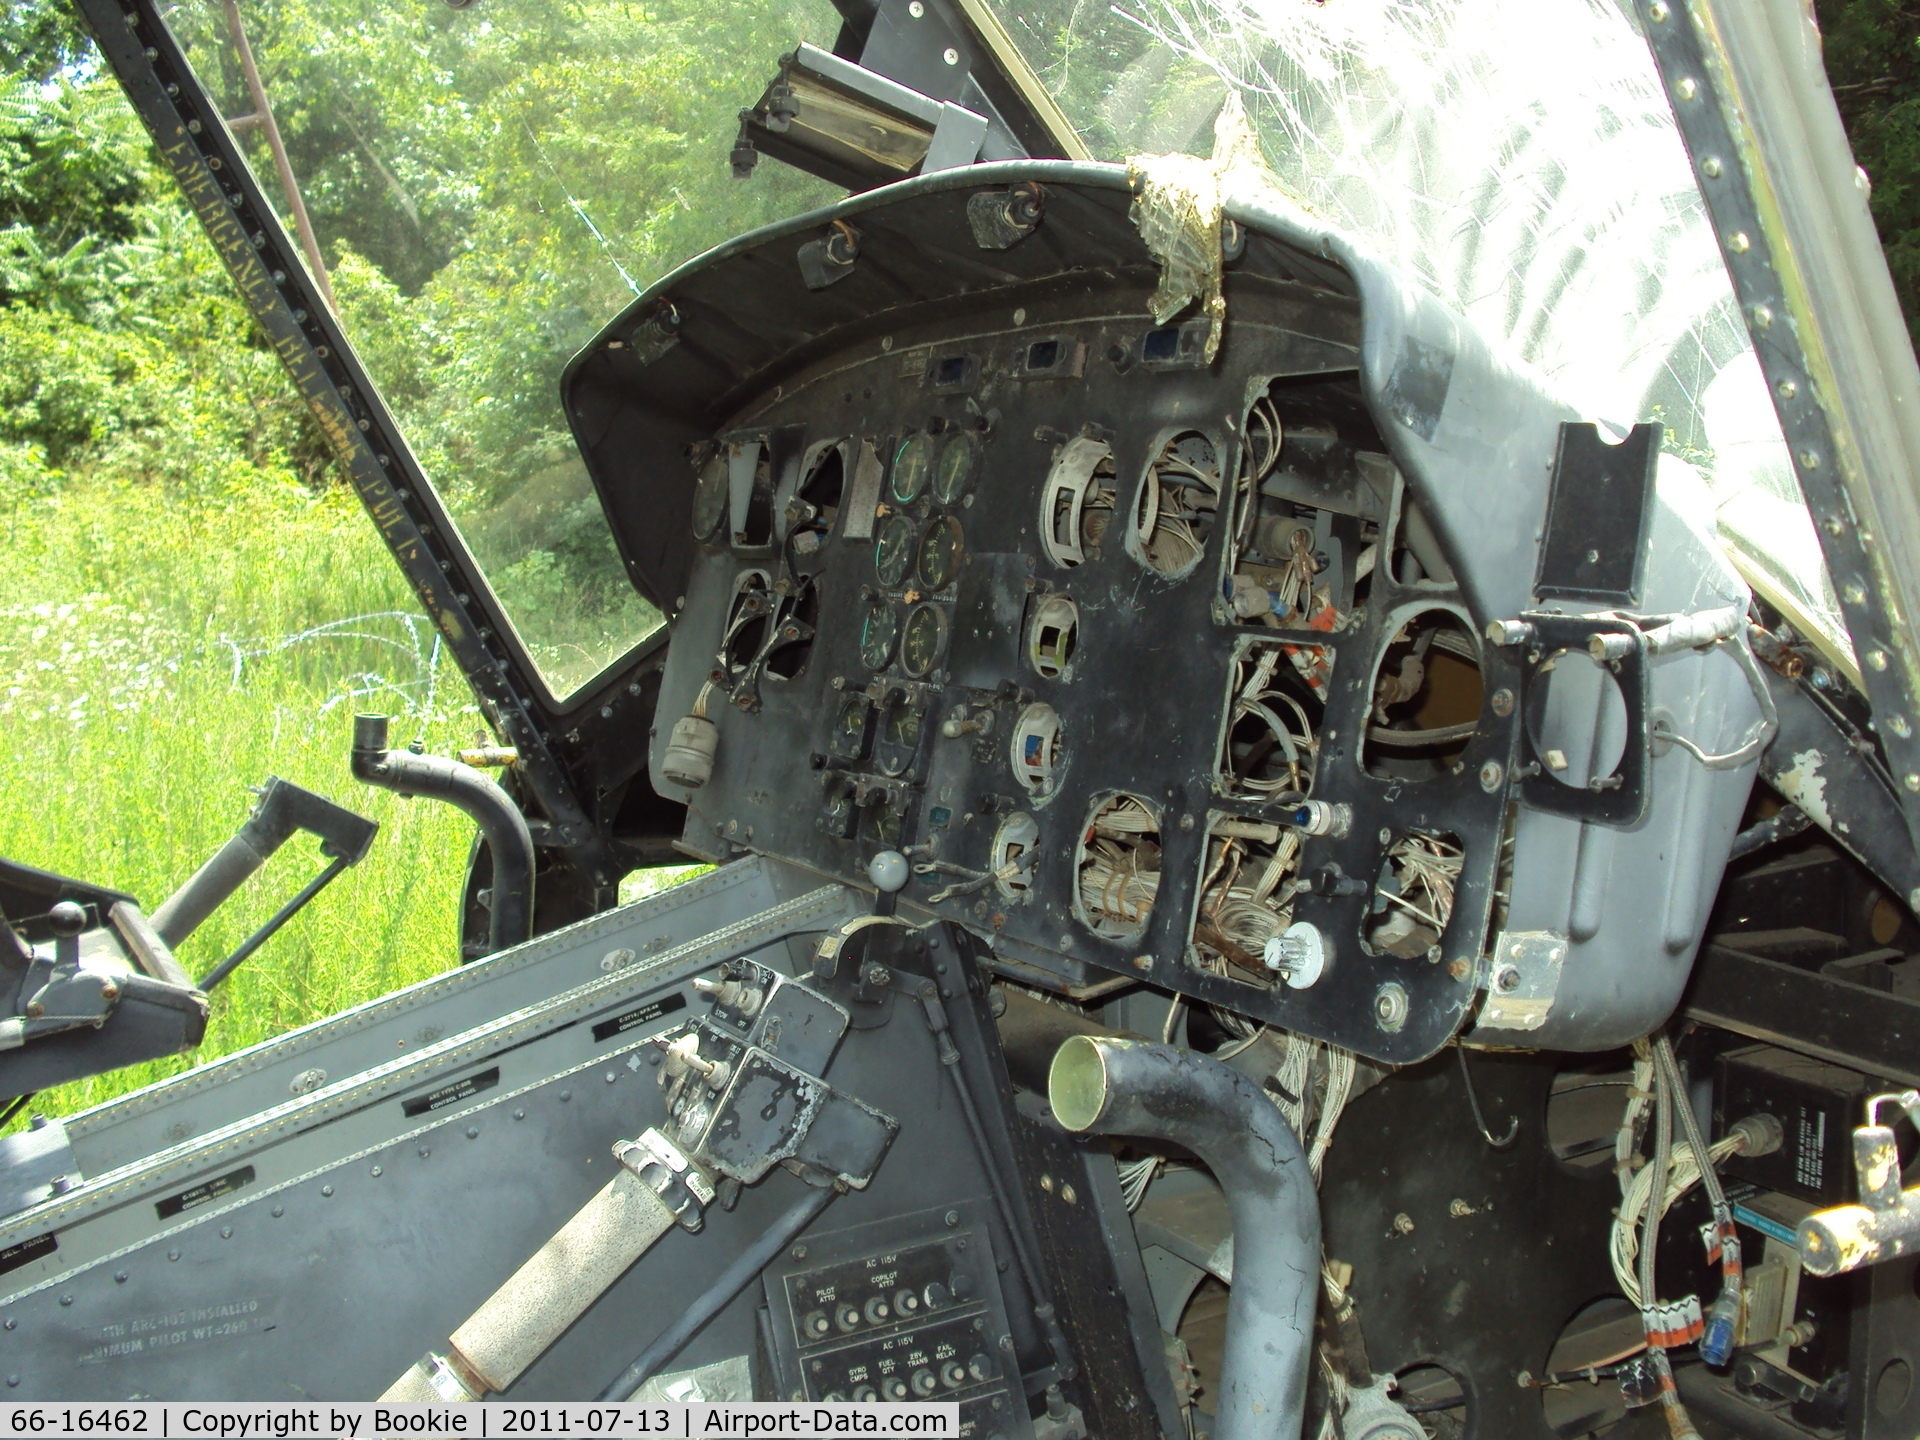 66-16462, 1966 Bell UH-1H Iroquois C/N 8656, Here's the shot of the instrument panel.  It was really sad to see a bona fide Viet Nam combat veteran treated this way.  Ft. Leonard Wood